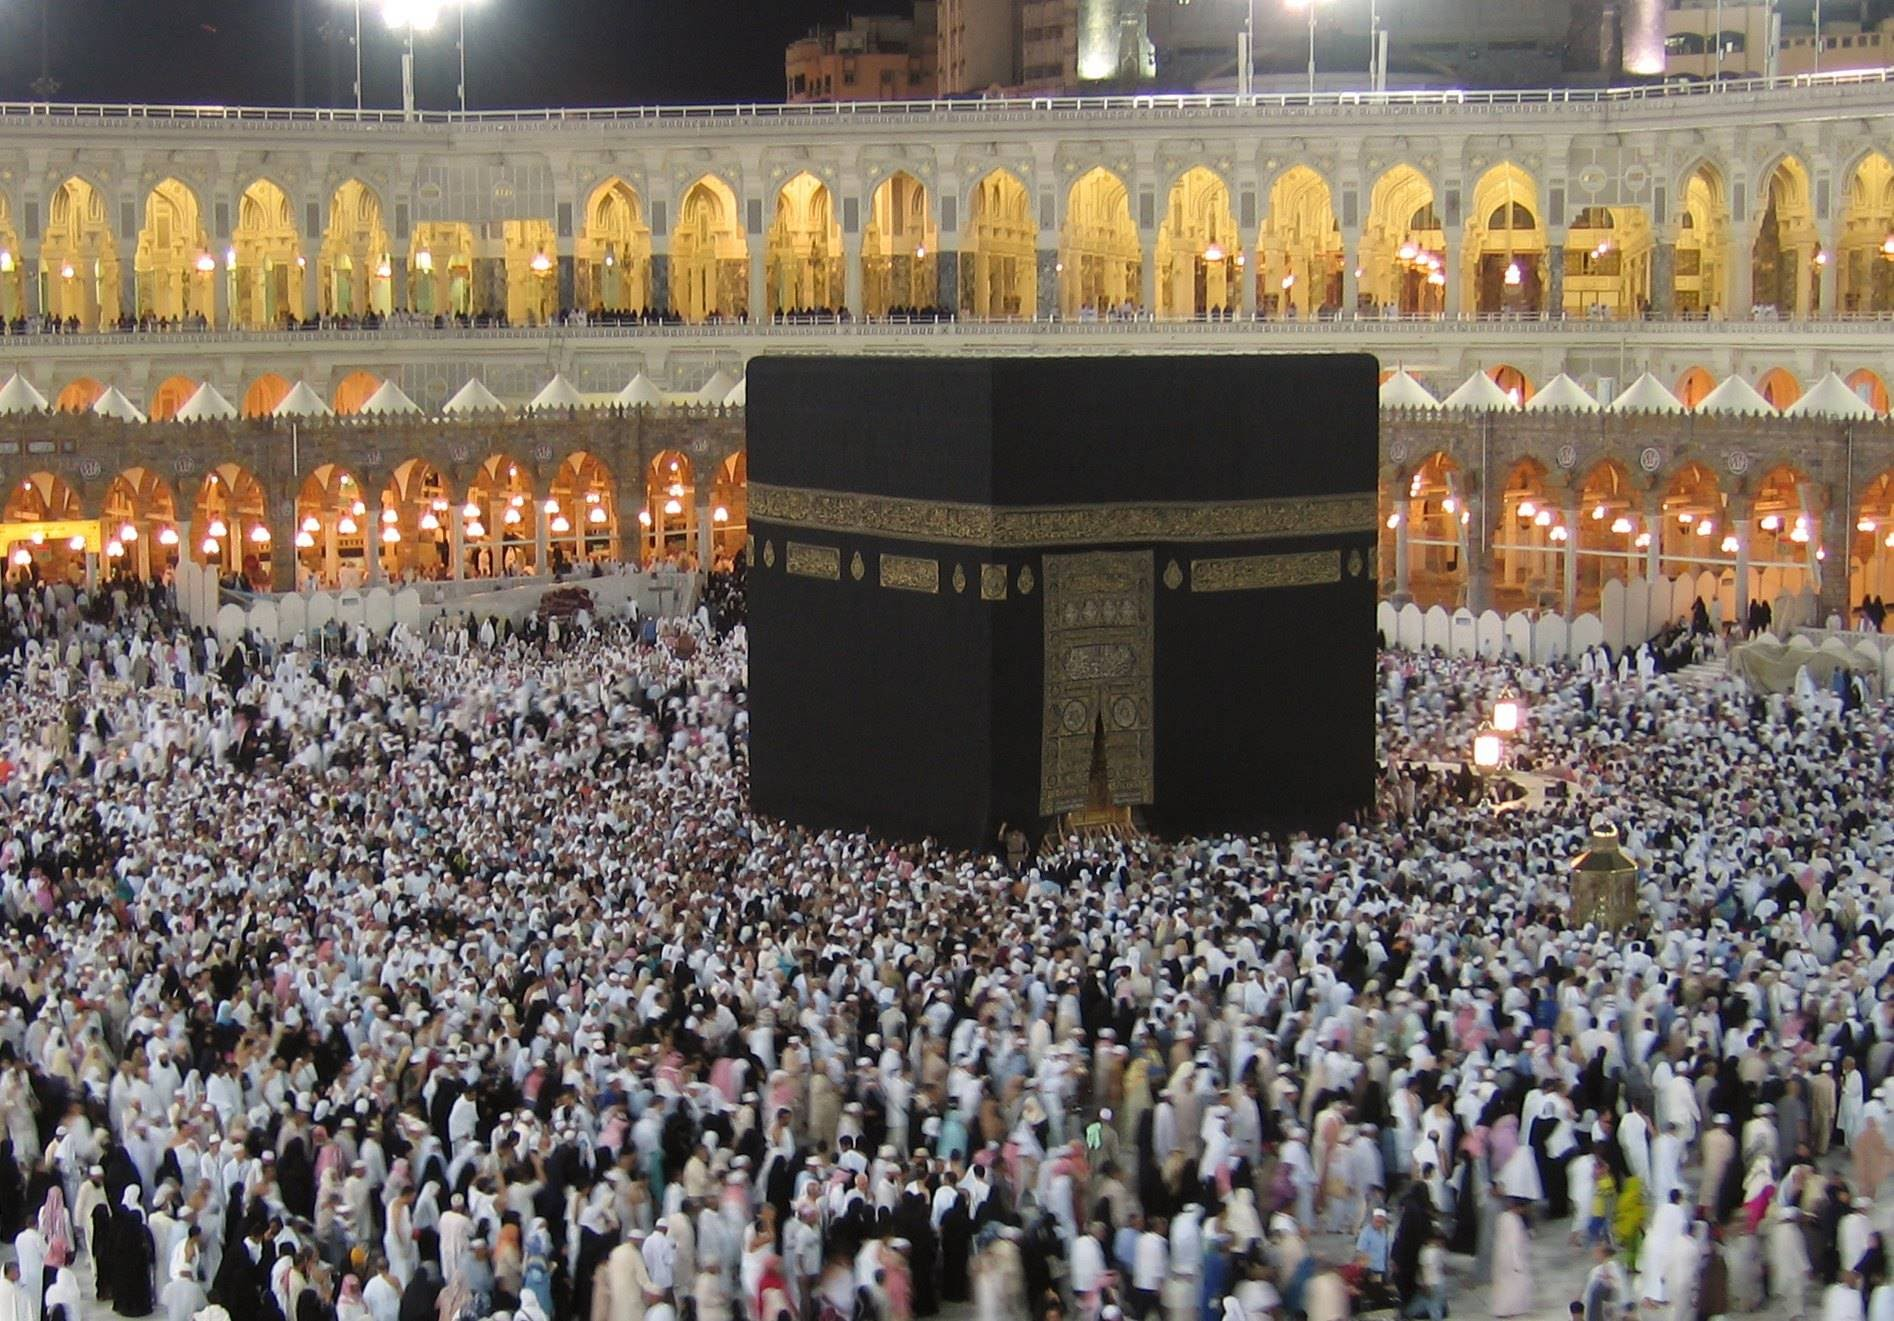 kaaba_photos_image4arab (29).jpg